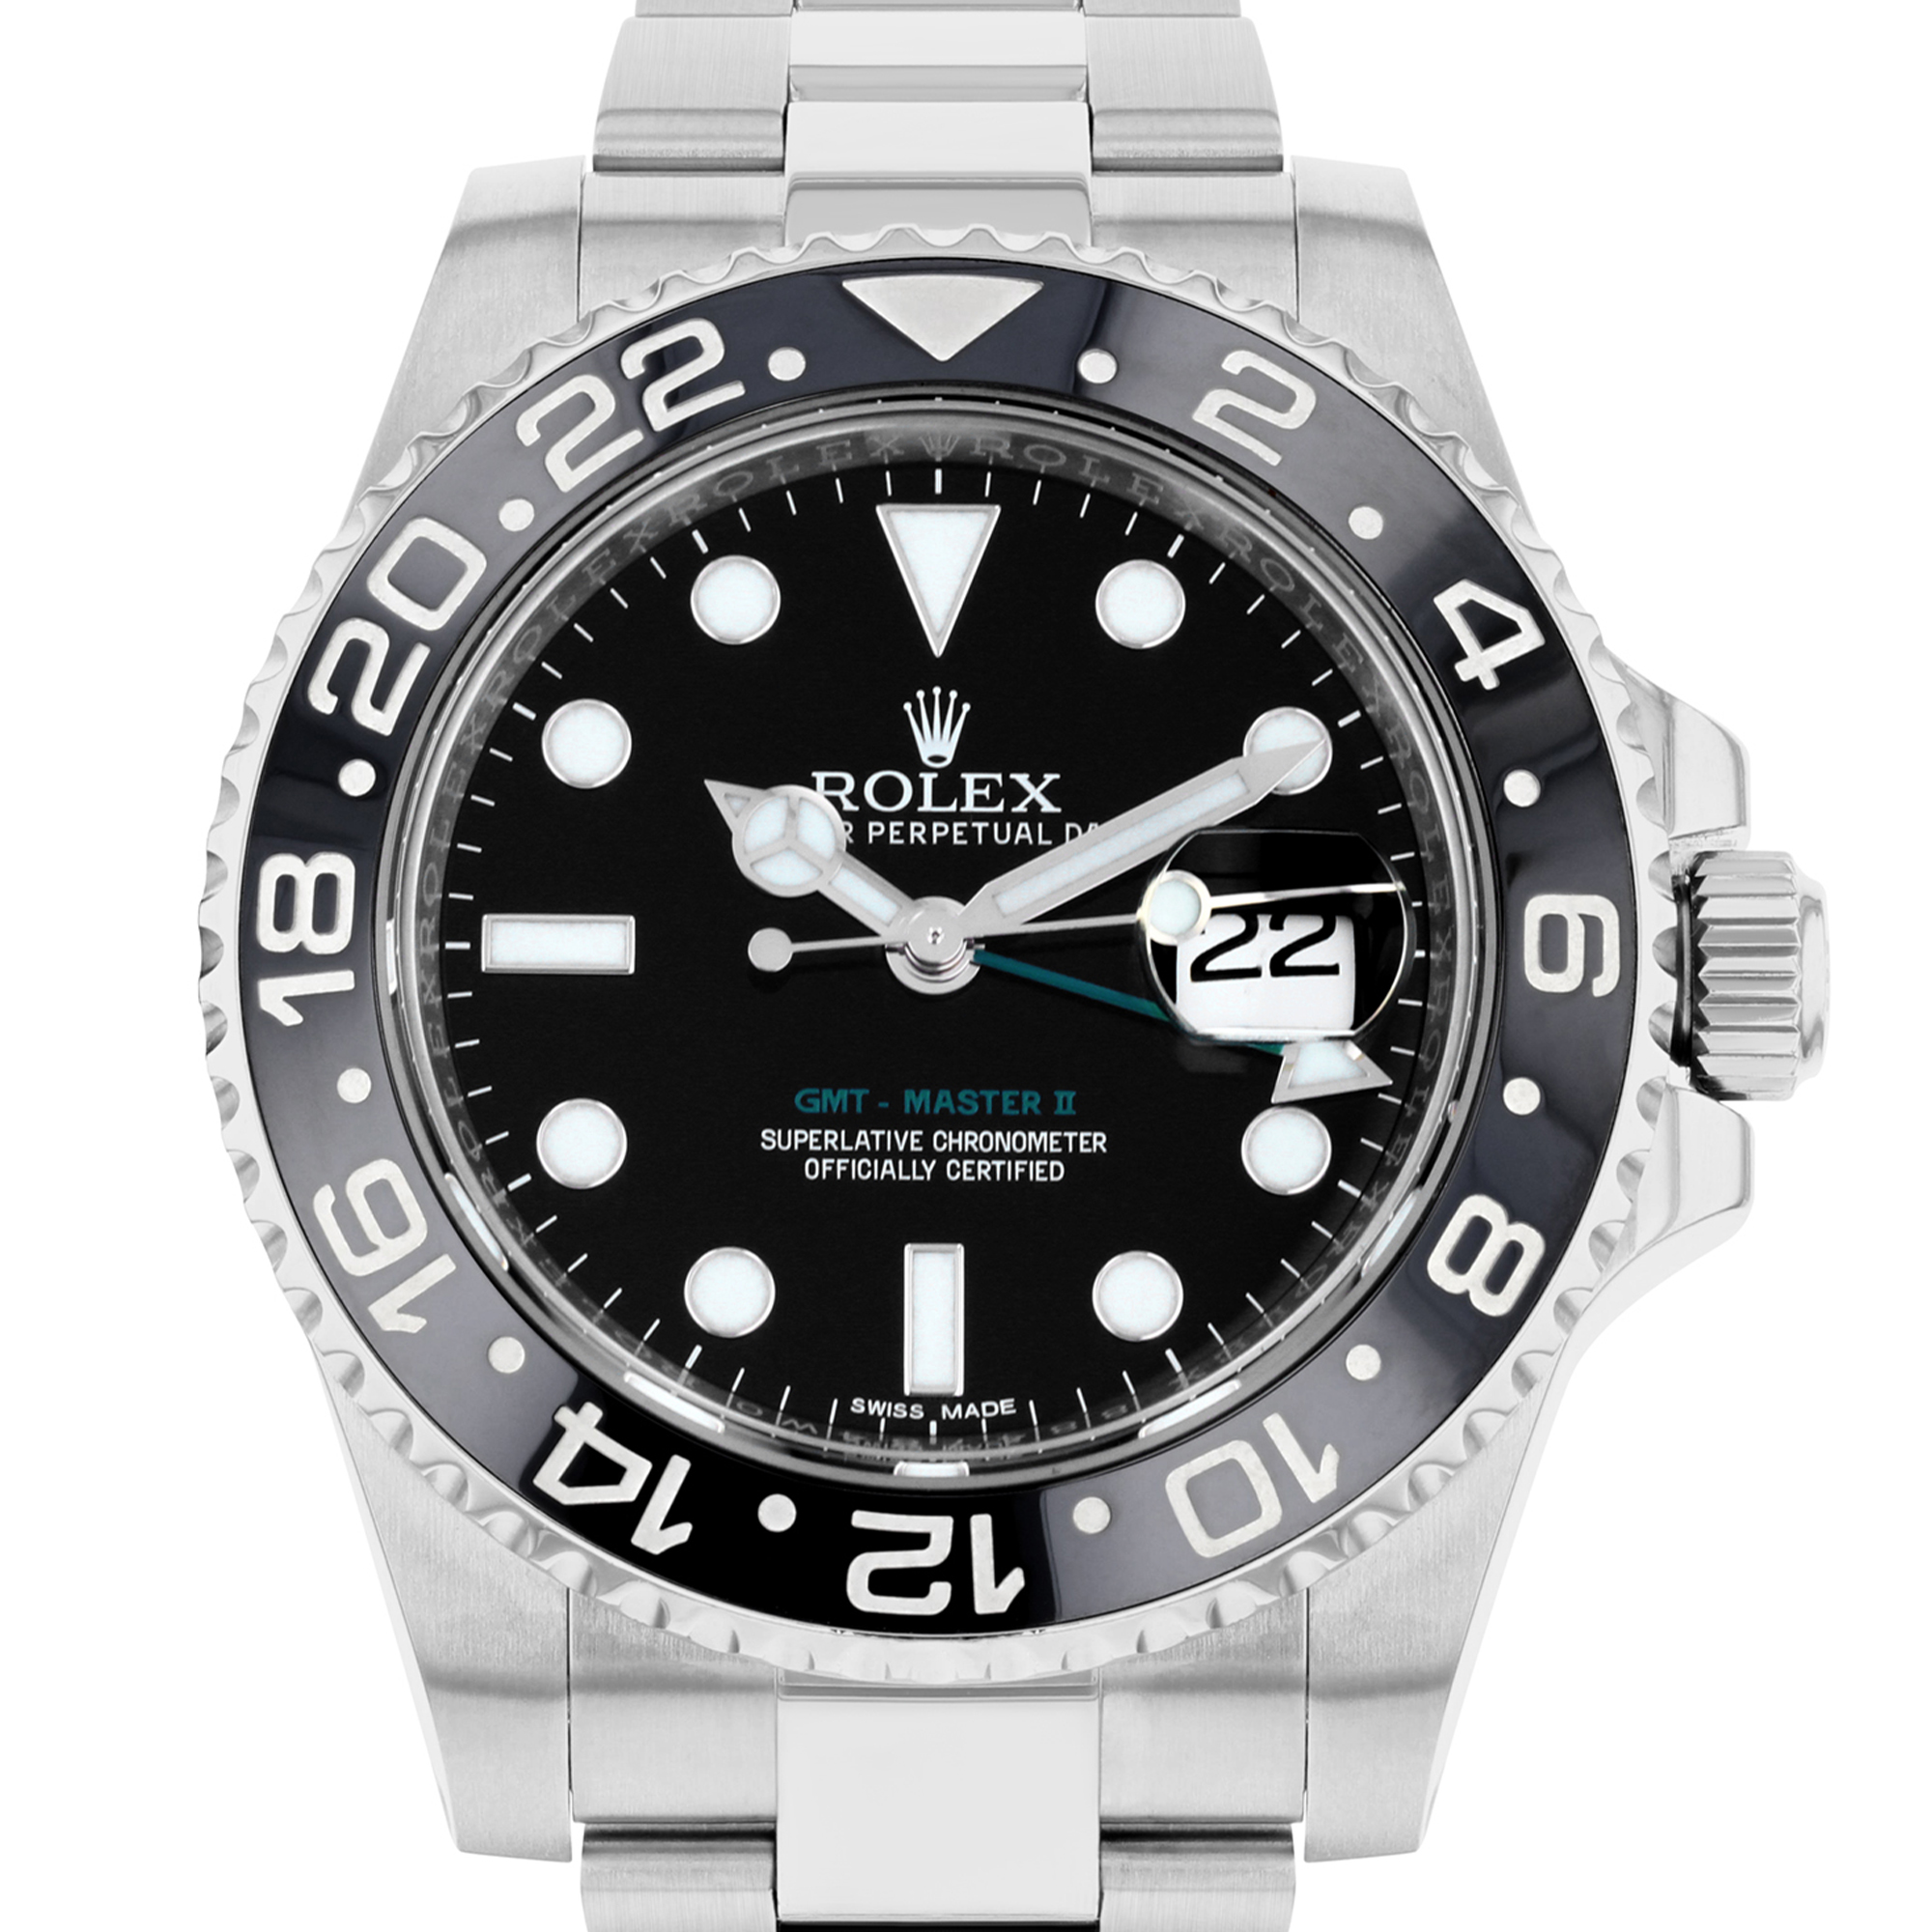 Rolex GMT Master II 40MM Black Date Stainless Steel | 116710 - 2014